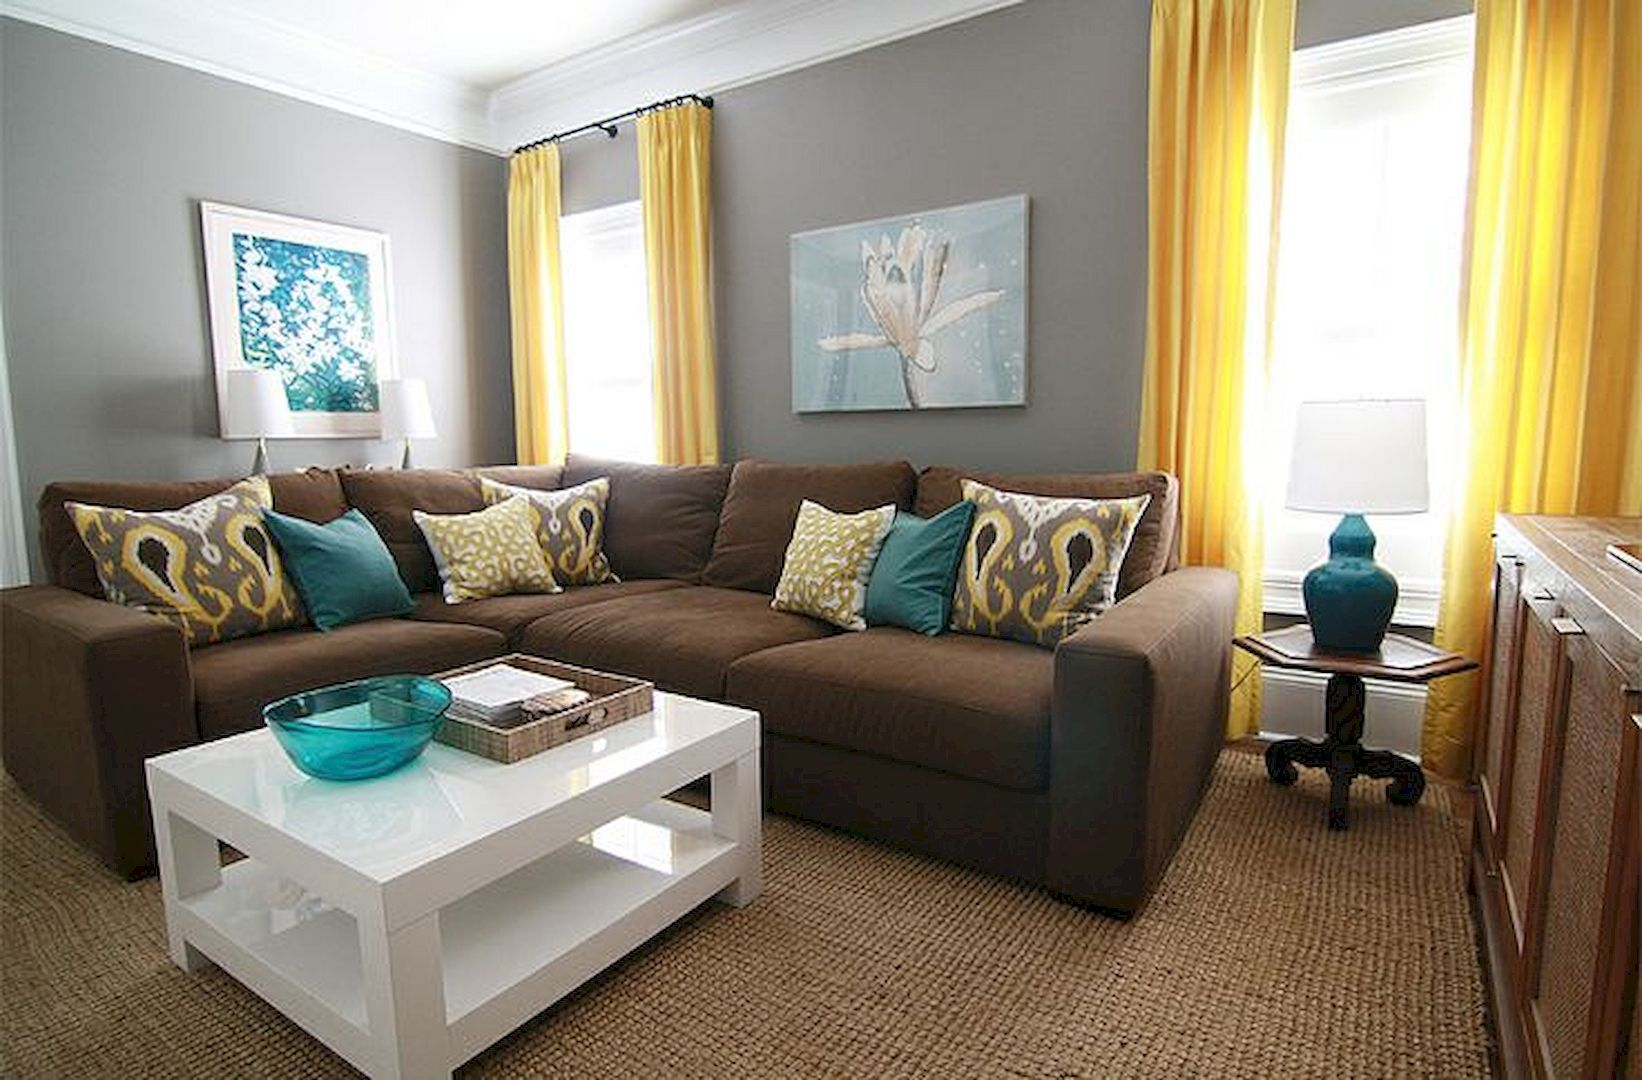 Colorful Designs 5 Tips For Choosing The Best Rug Your Interior Brown Living Room Decor Couch Sofa